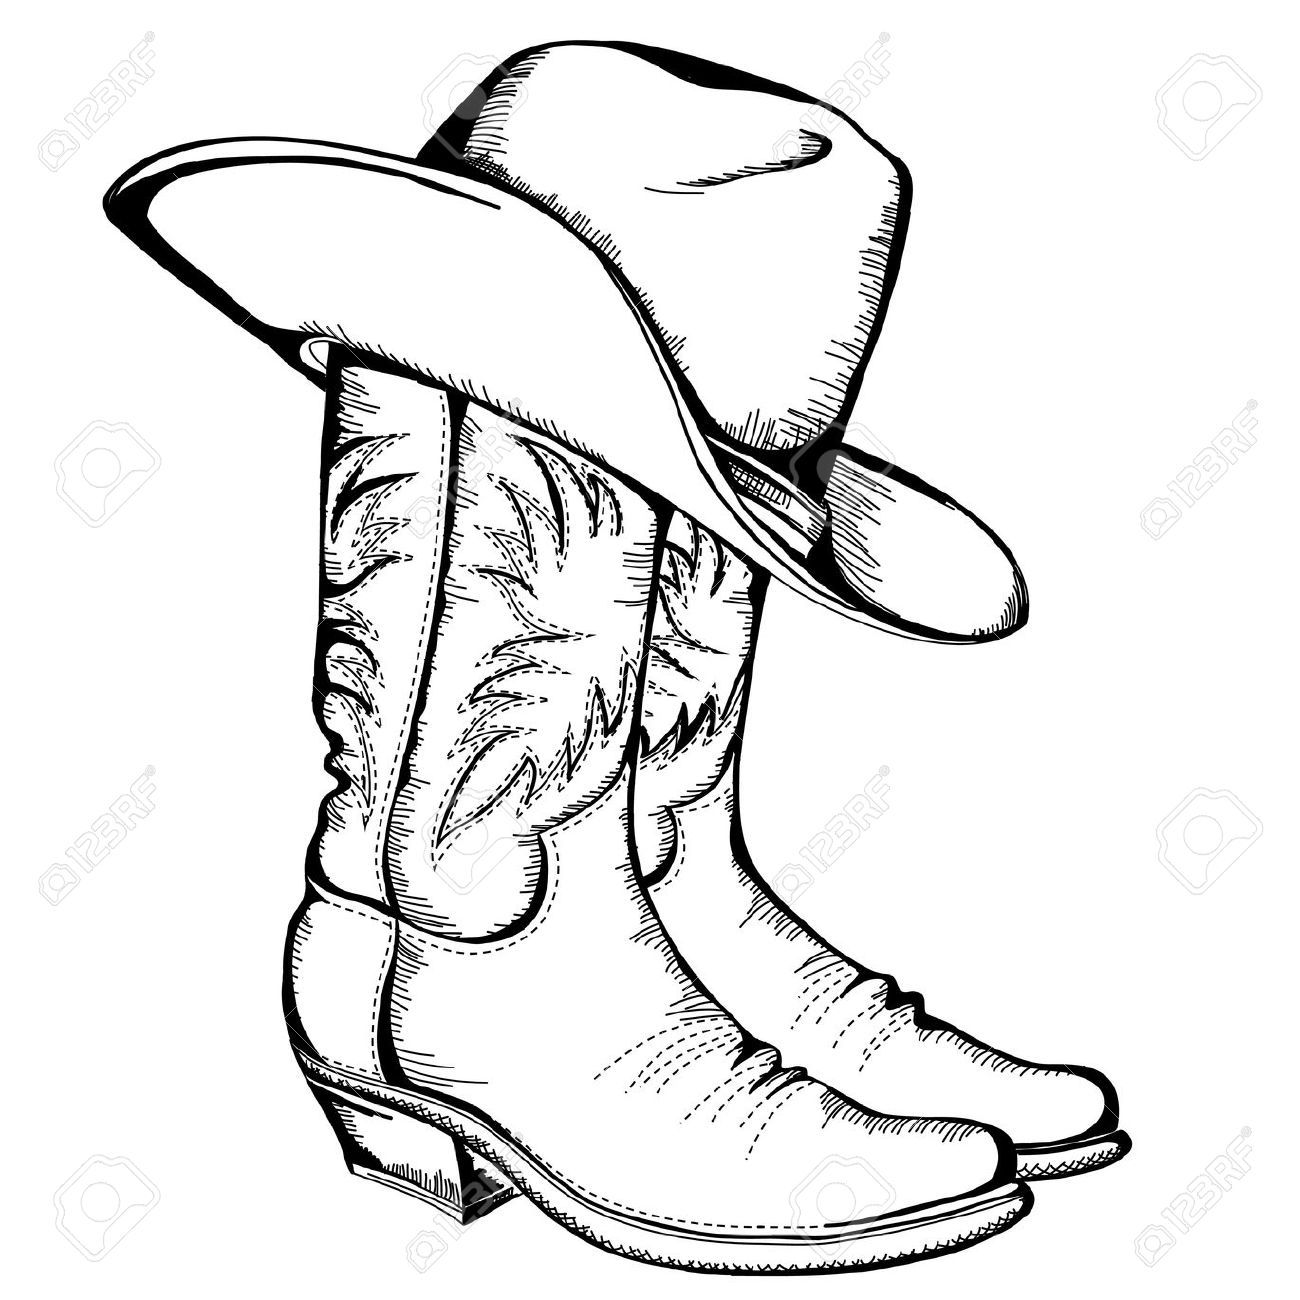 Cowboy Boots And Hat Graphic Illustration Royalty Free